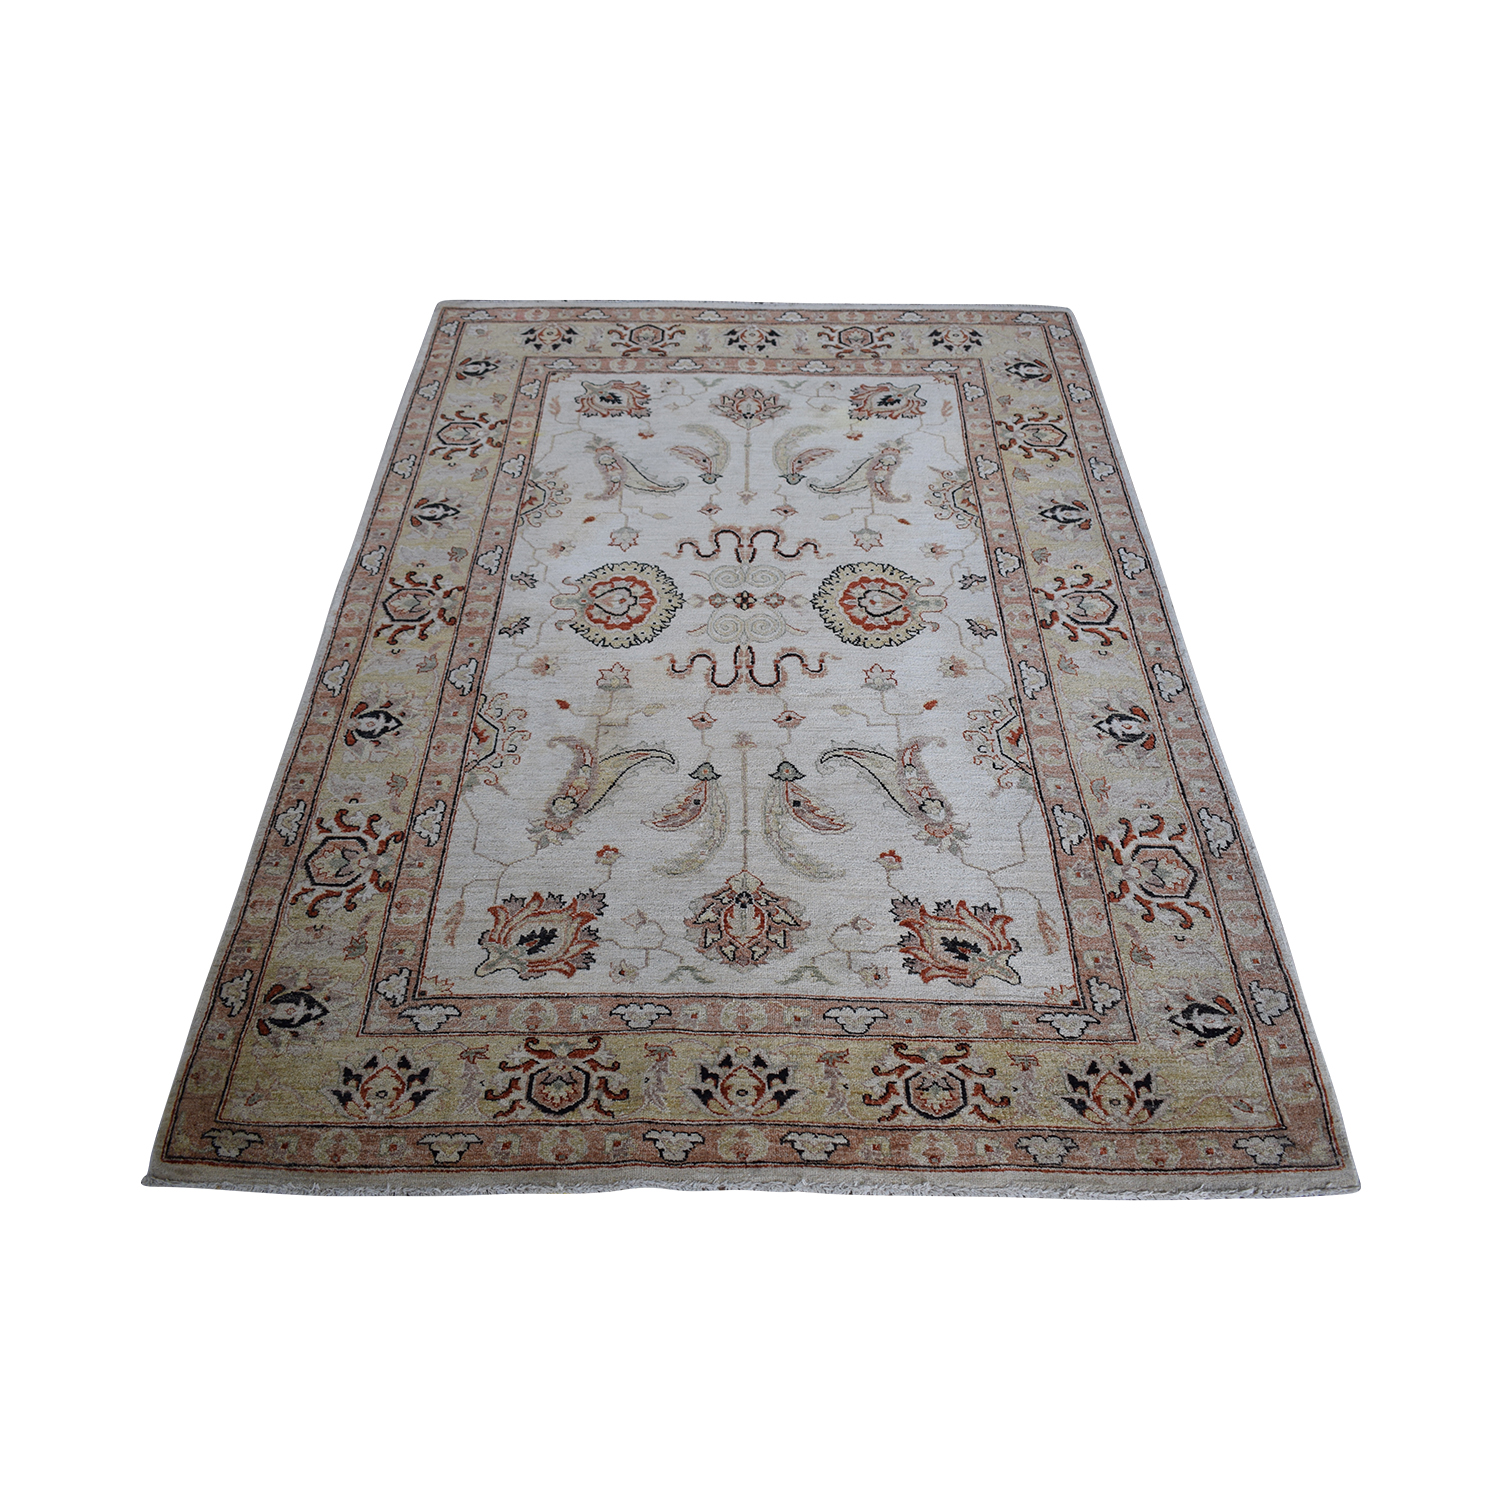 buy Wayfair Patterned Area Rug Wayfair Decor